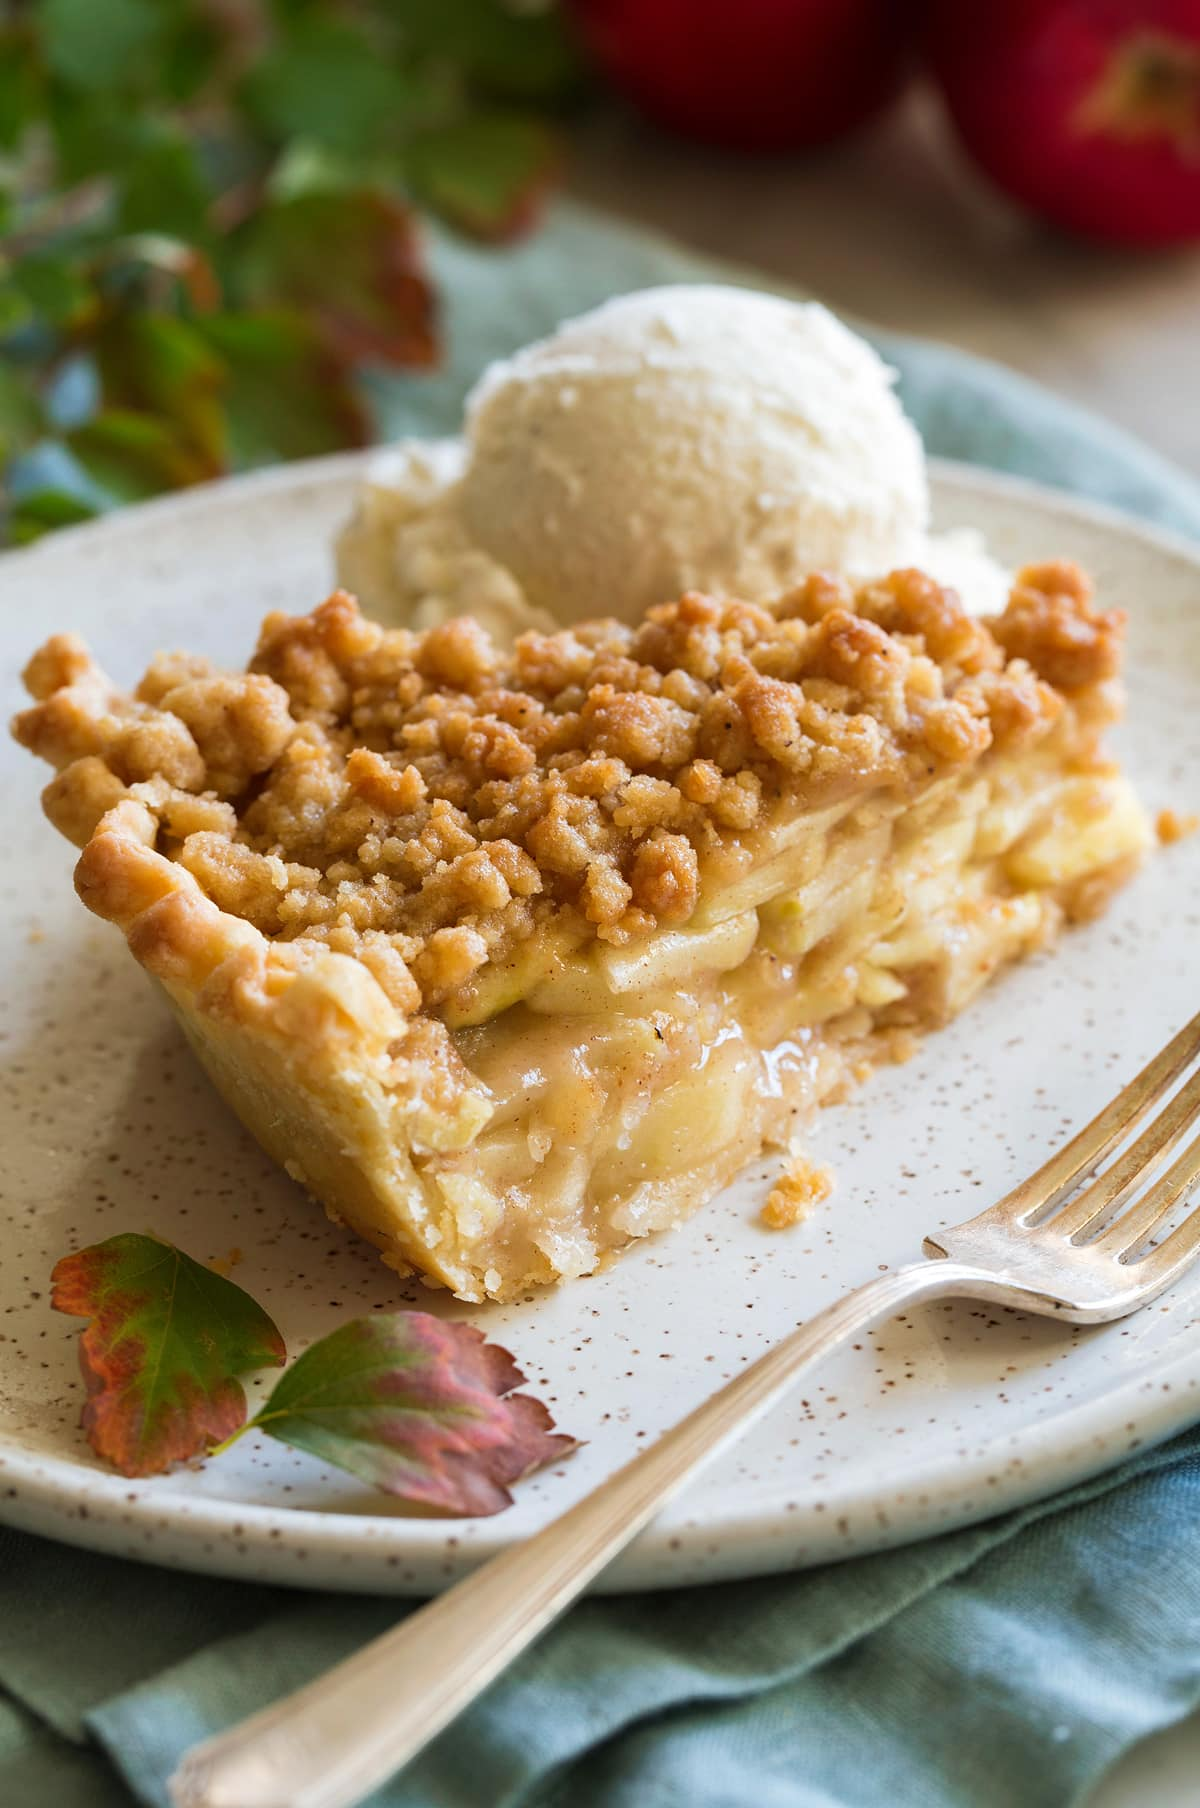 Slice of dutch apple pie in a dessert plate with a scoop of vanilla ice cream on the side.